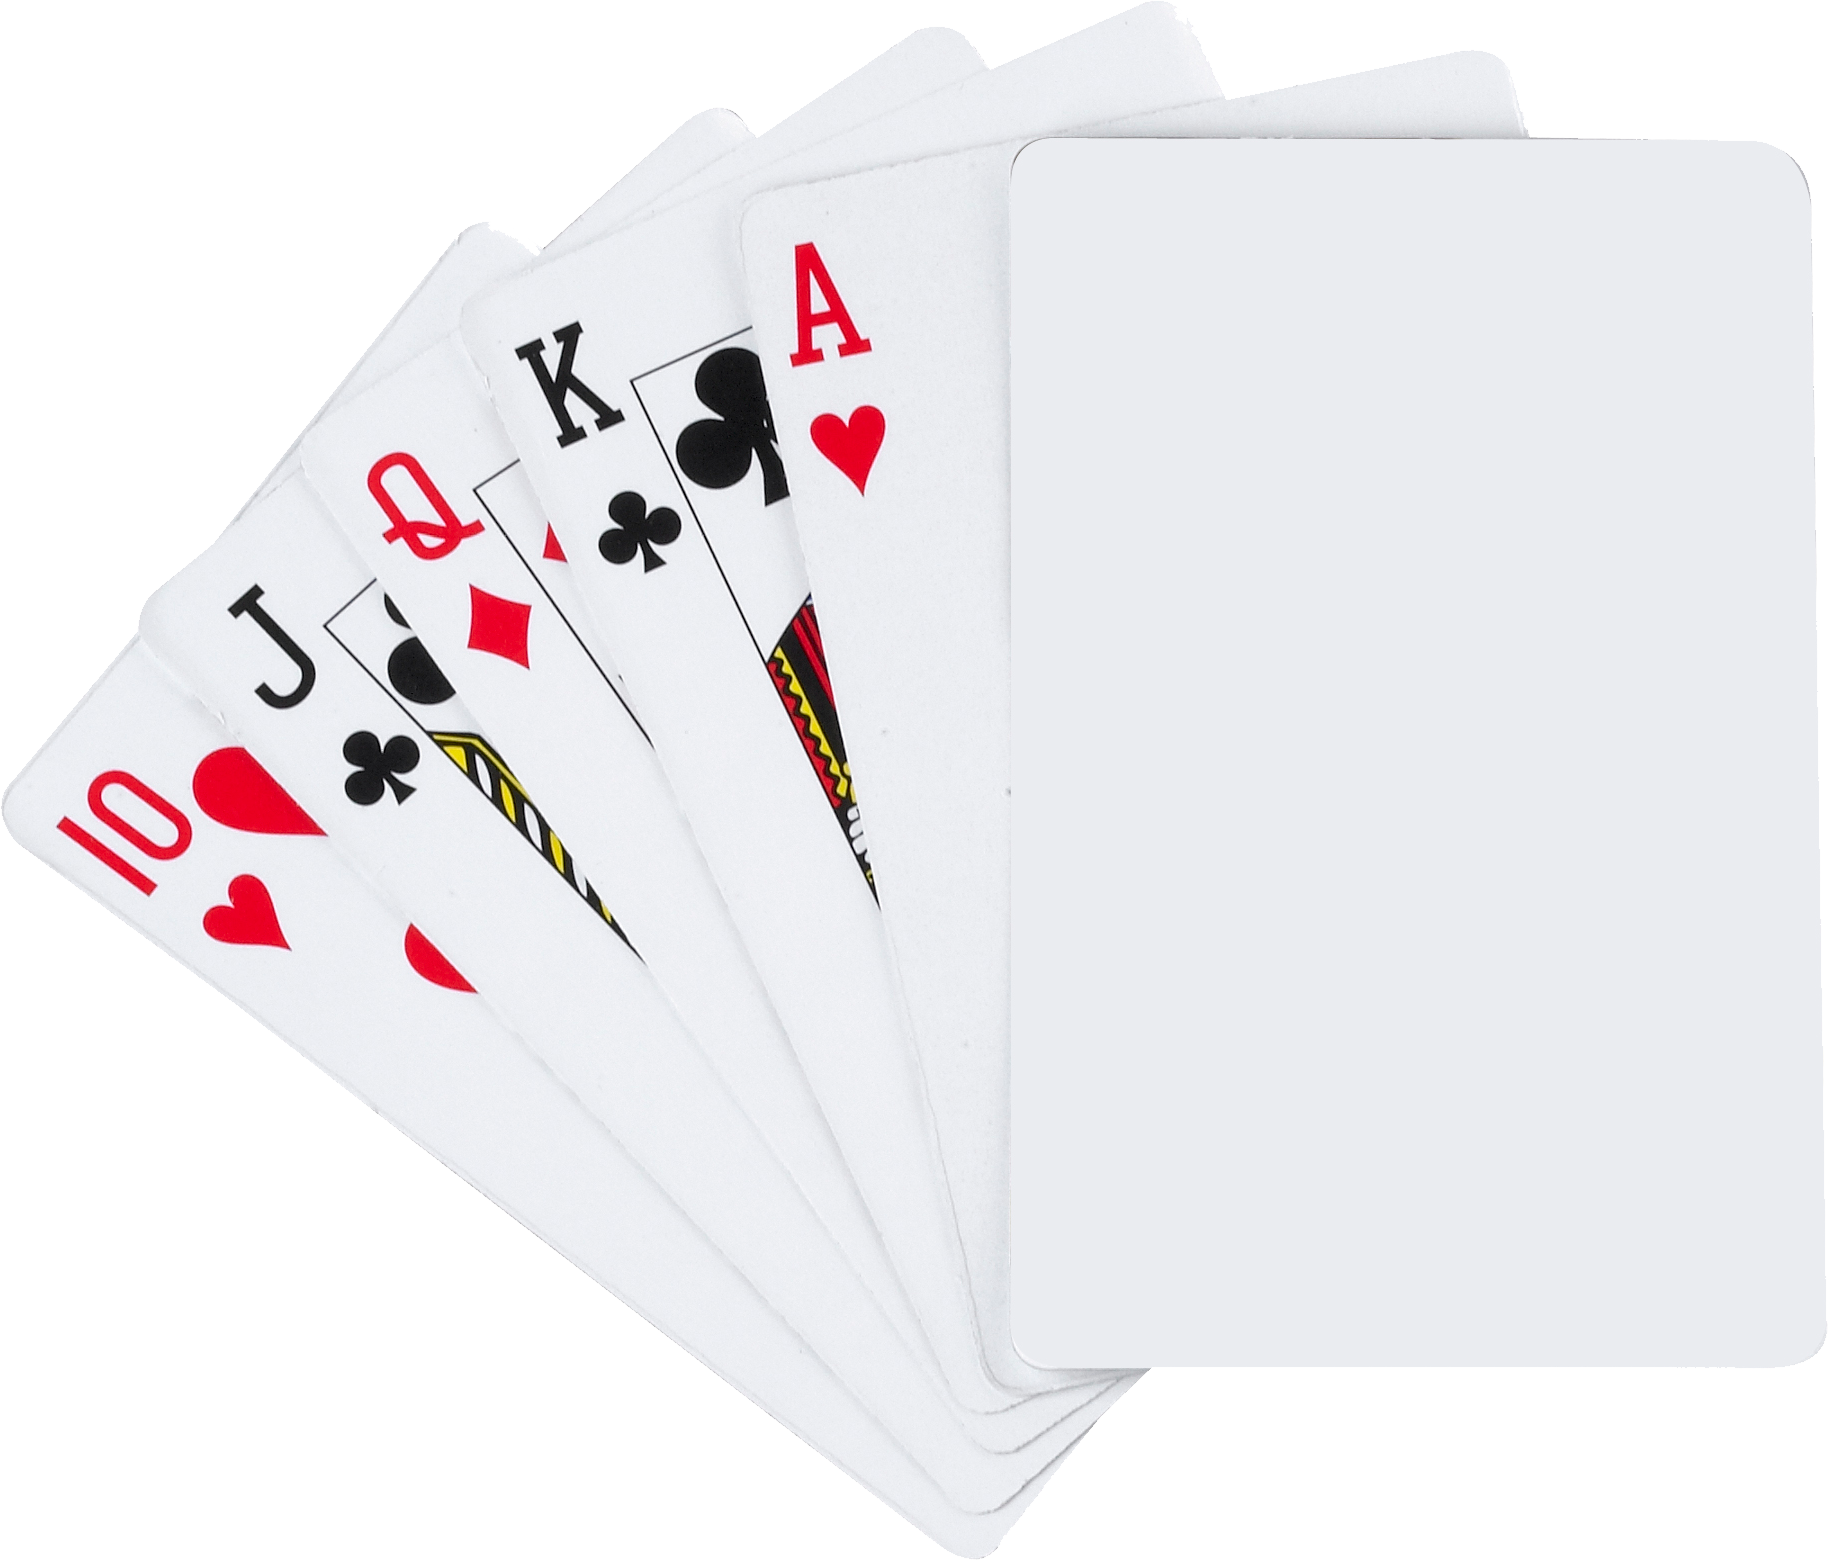 Cards Png Images Free Download Png Card Image